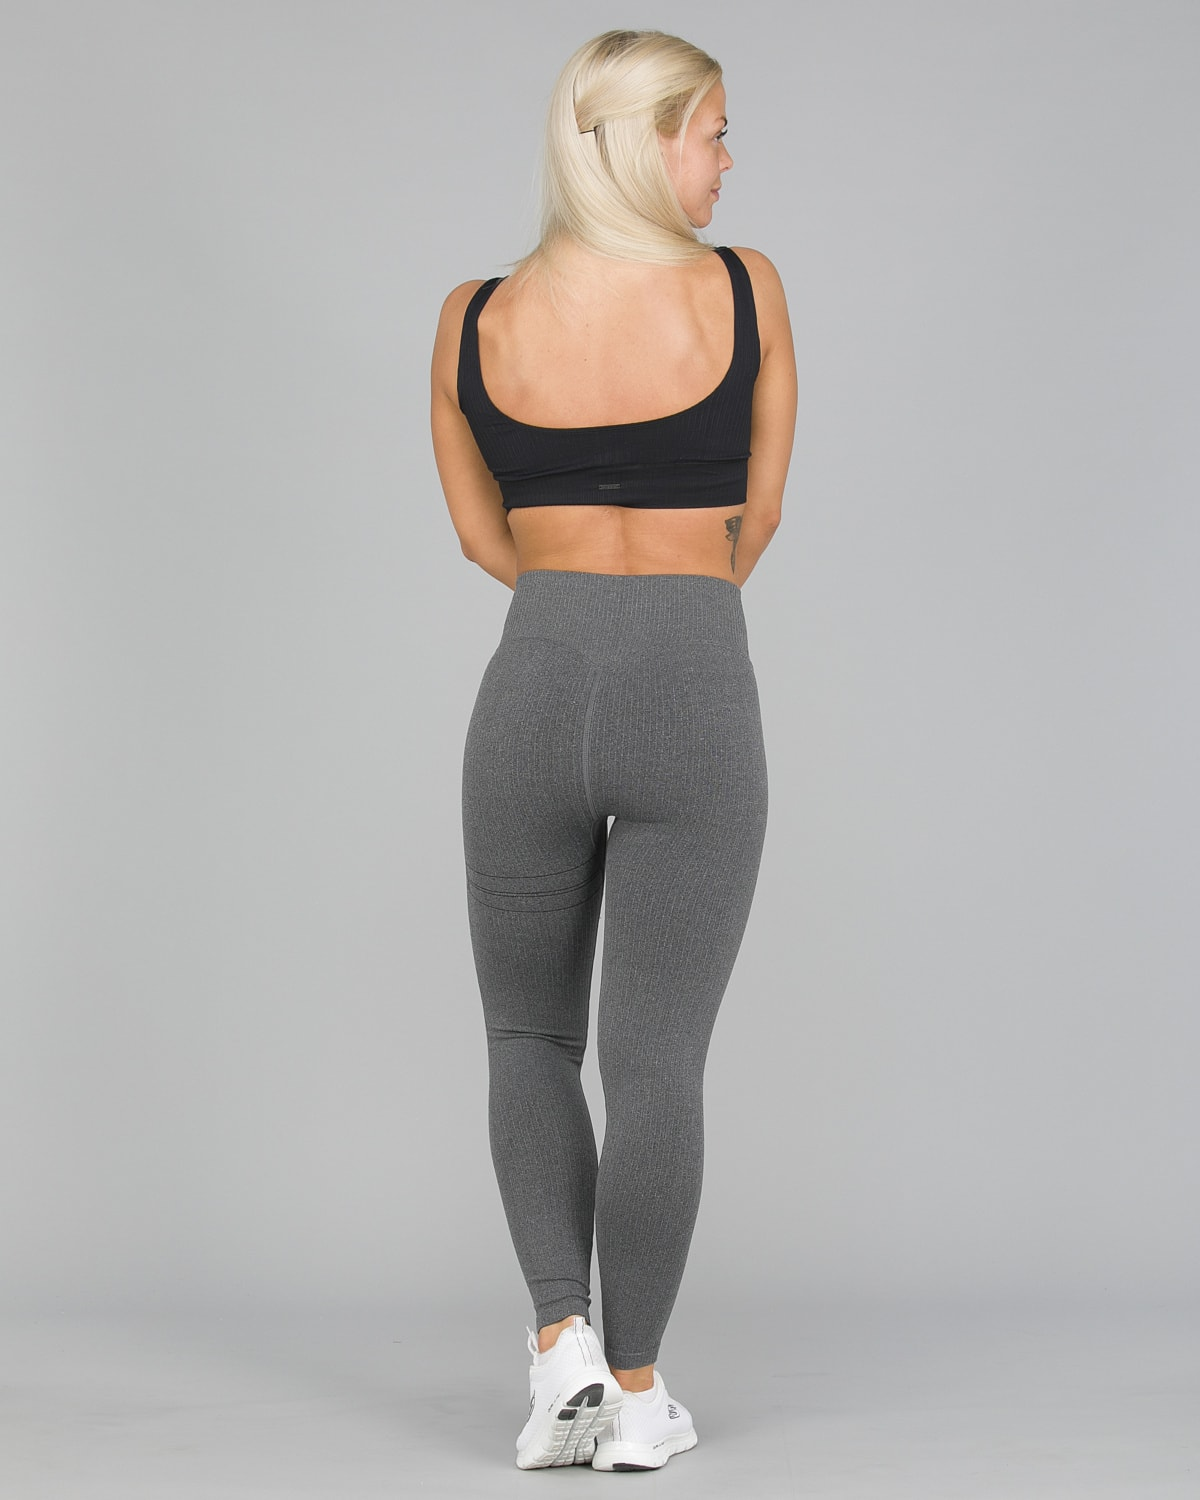 Aim'n Grey Ribbed Seamless Tights7